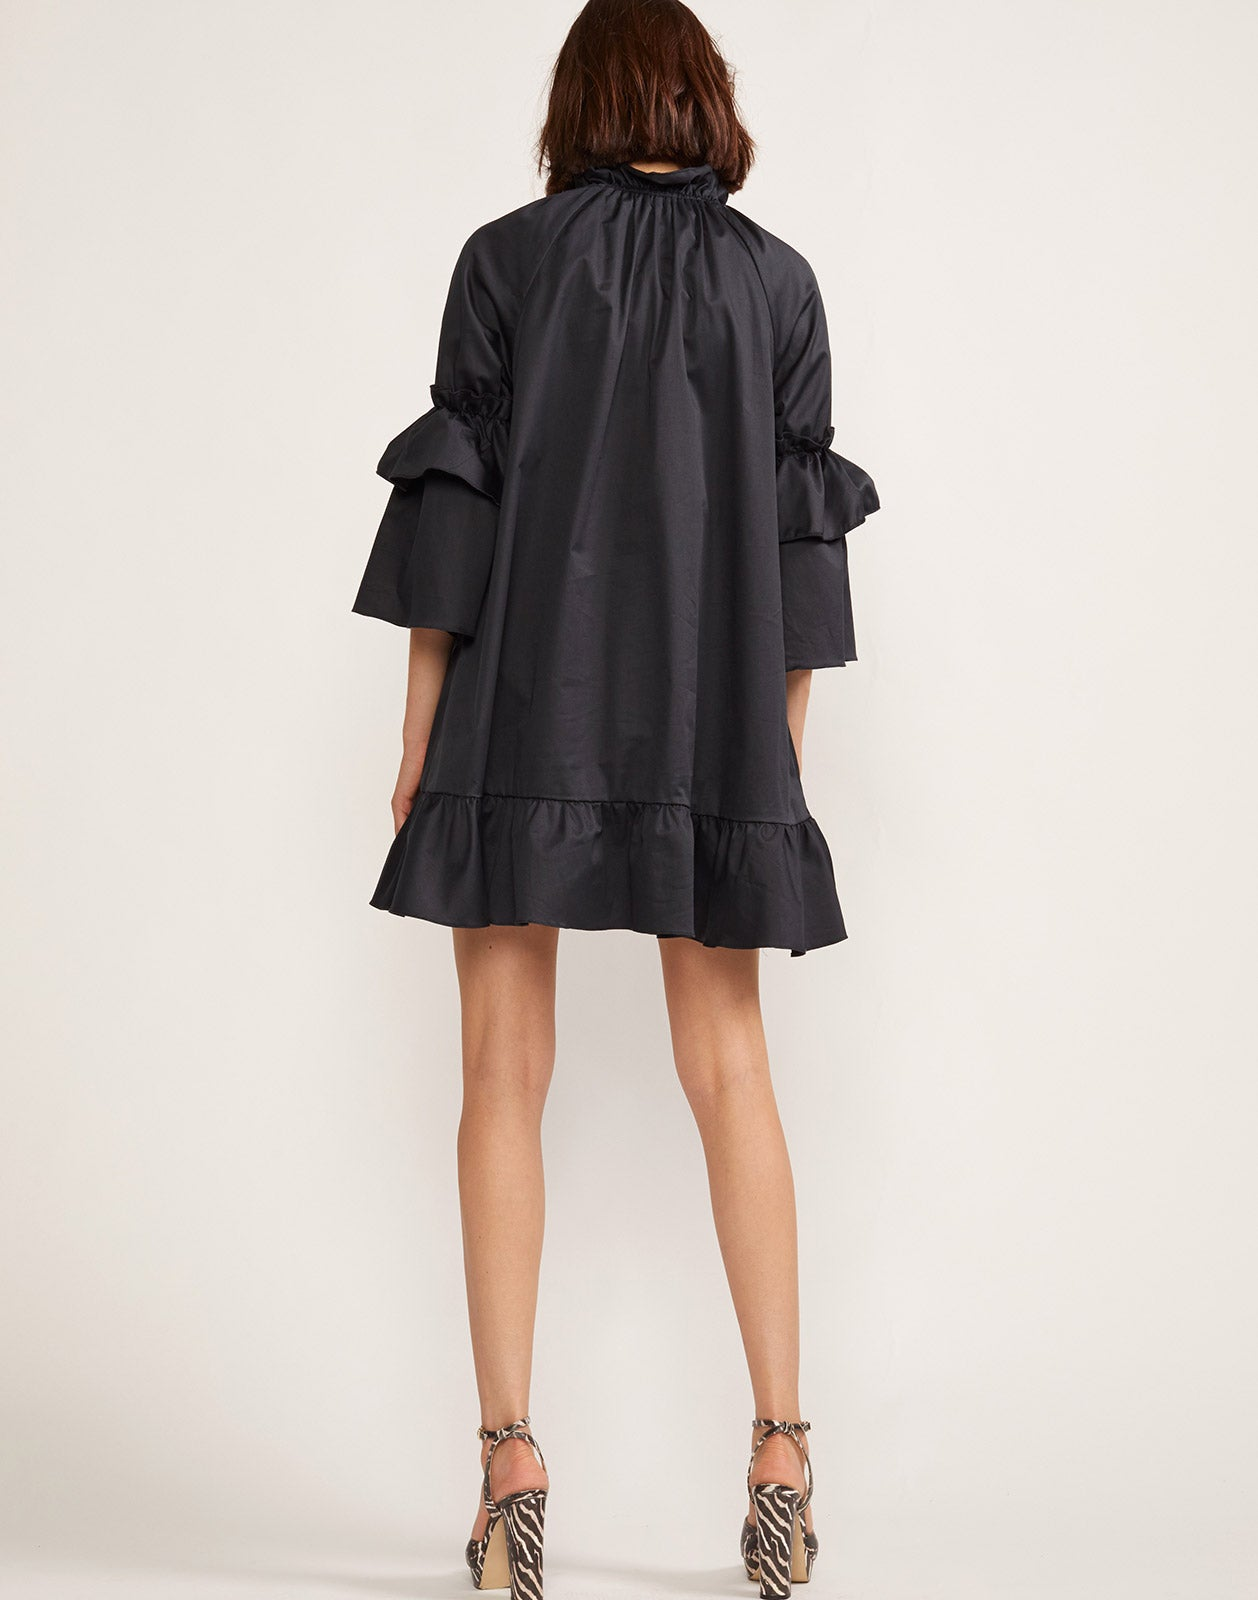 Alternate full back view model wearing Eden Ruffle Sleeve Mini Dress